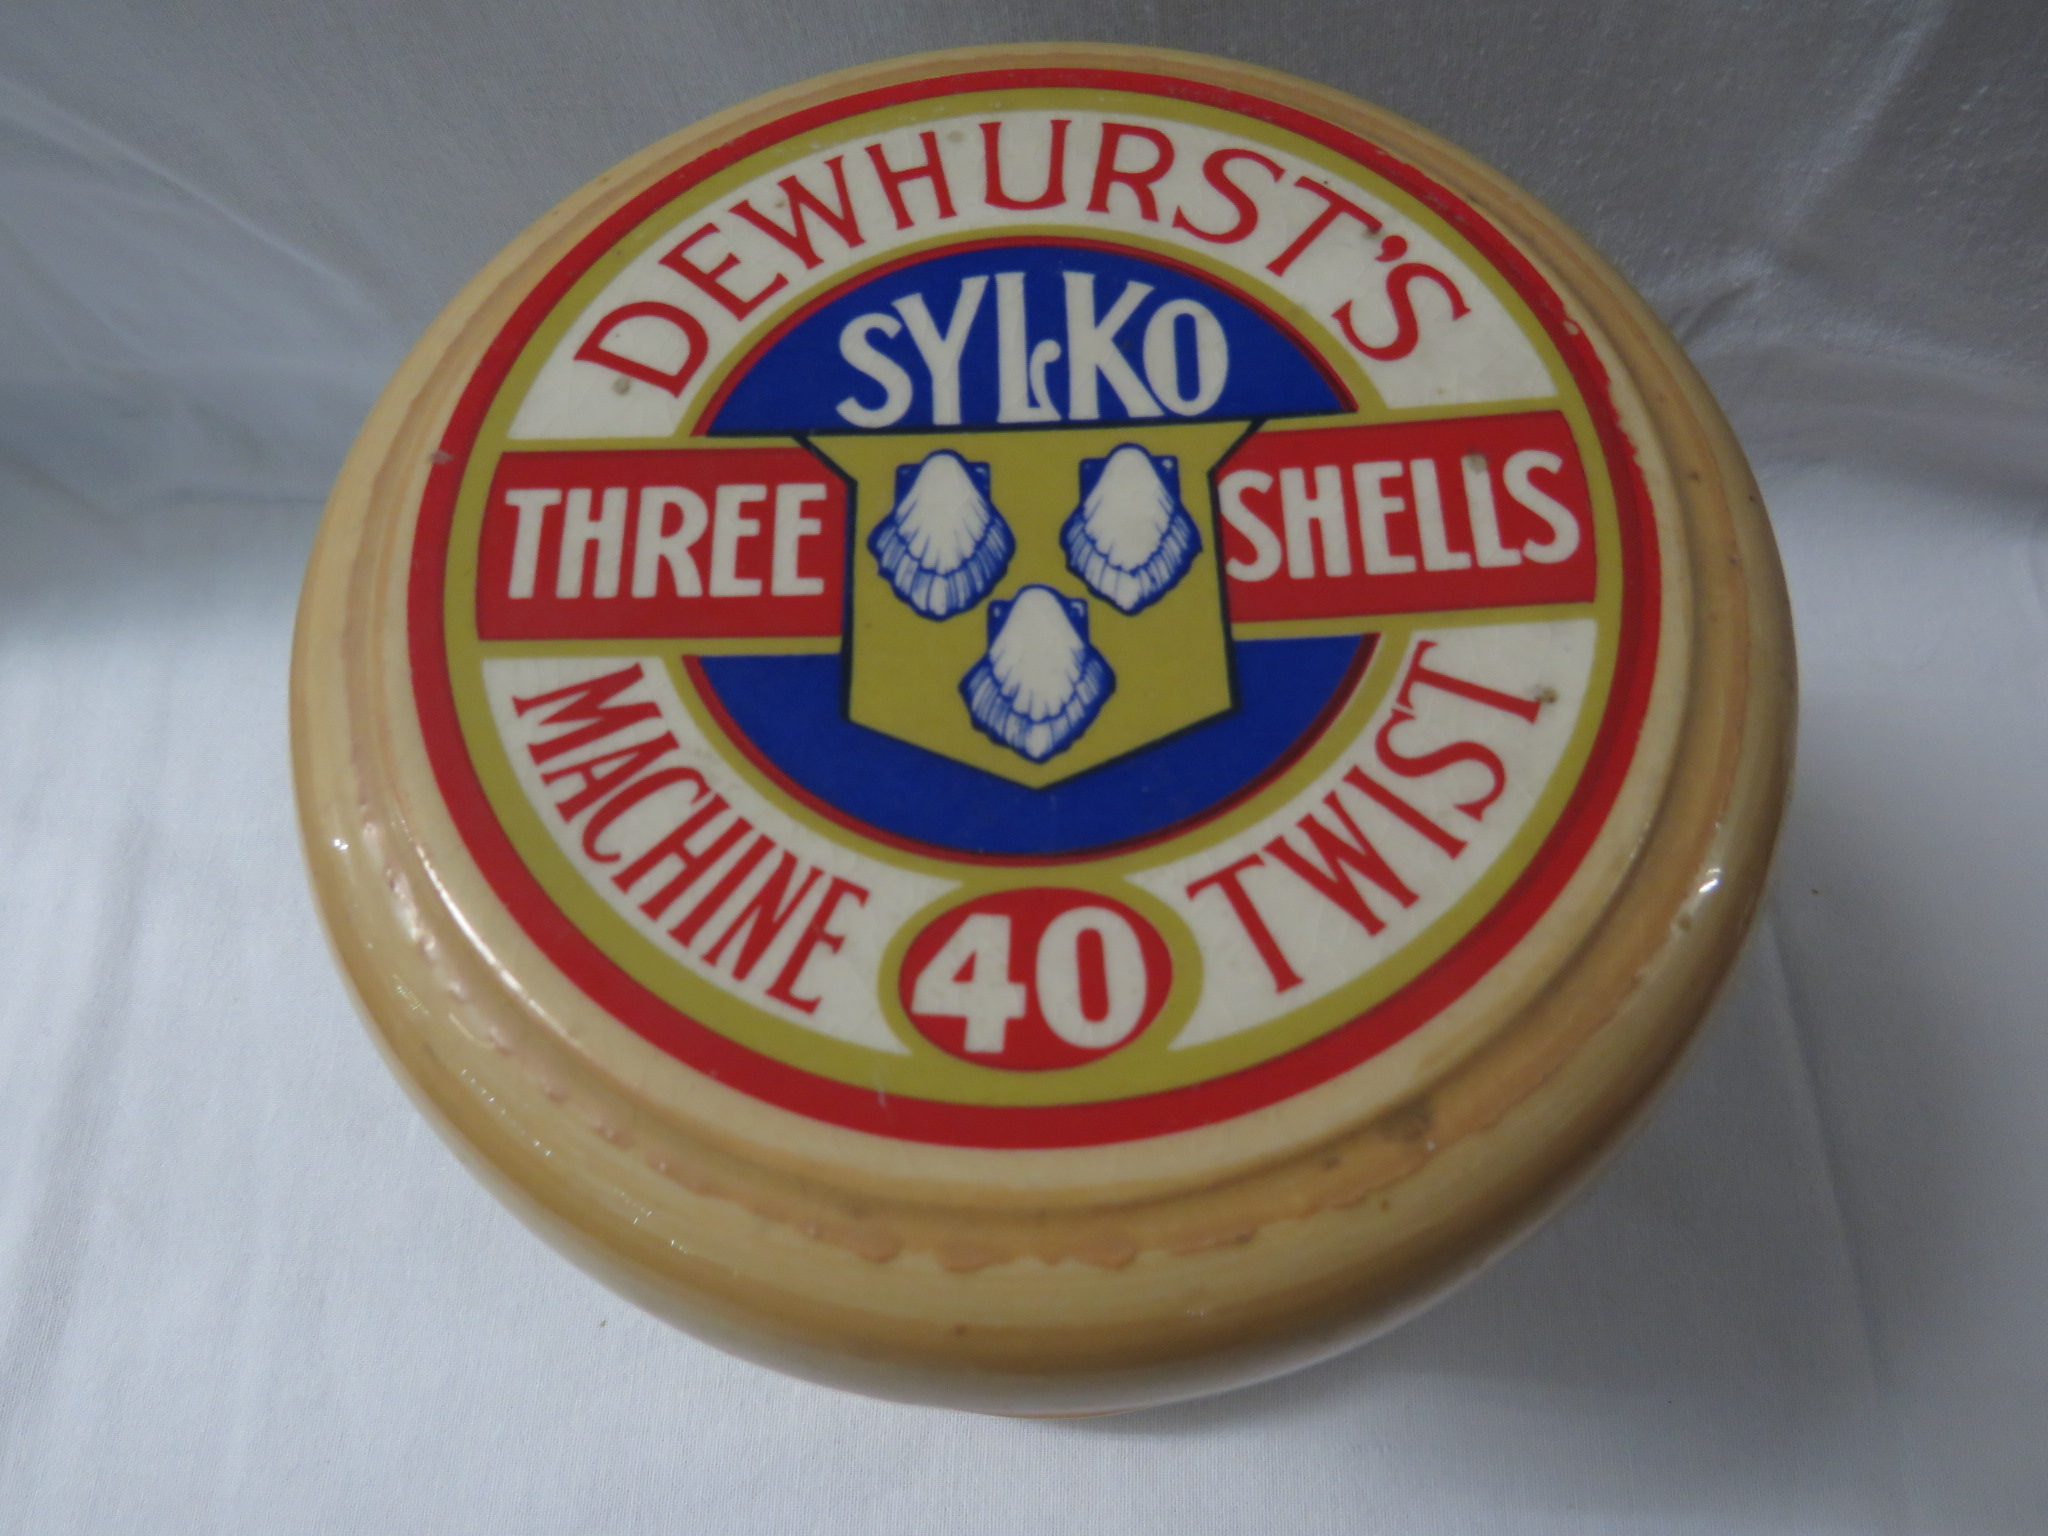 Lot 48 - Late 20th century ceramic jar modelled as a Dewhurst's Sylko reel, a lift out tray within, bearing